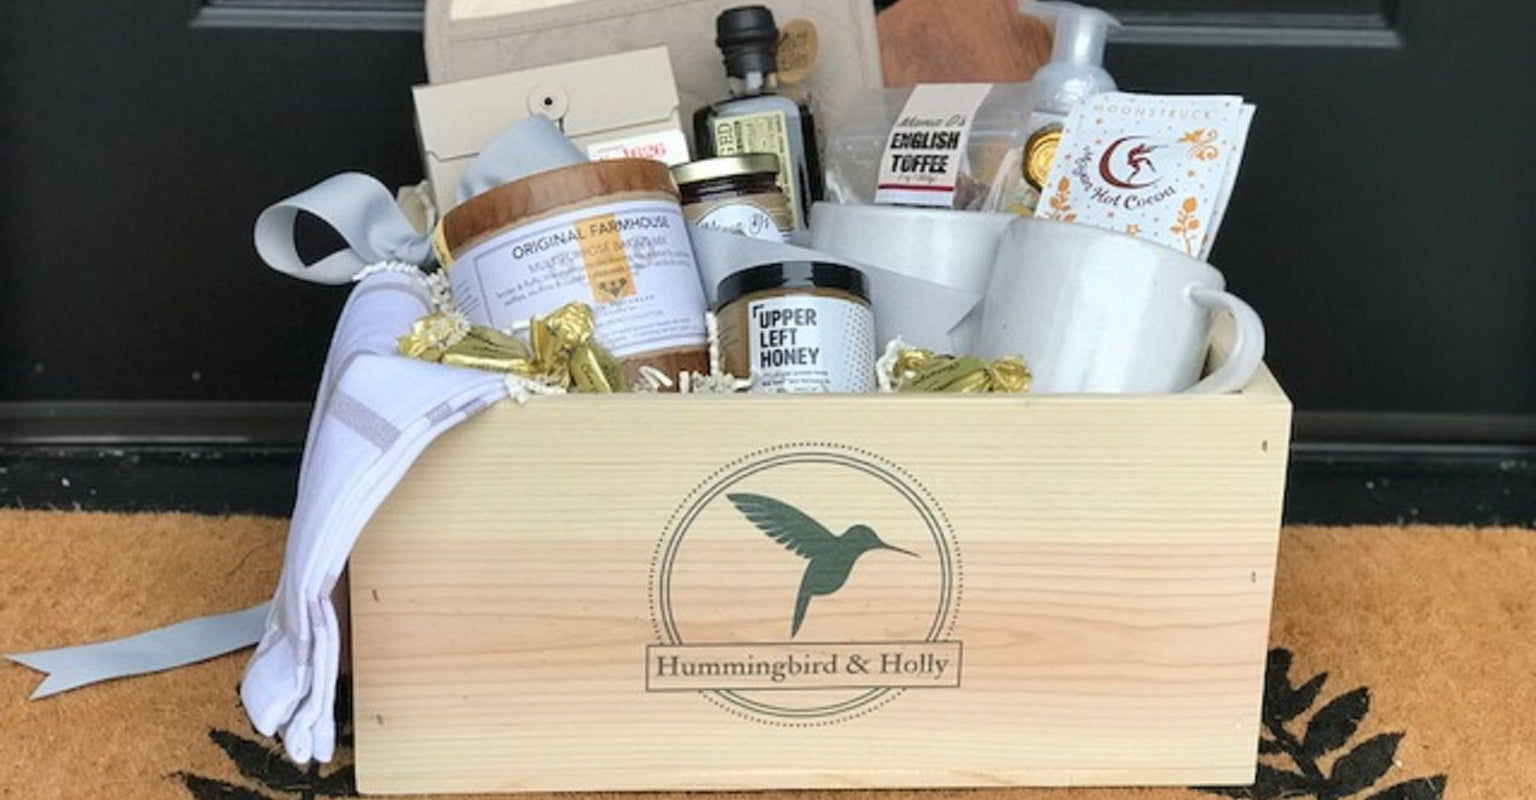 Custom Crate with Belle Epicurean baking mix, woodinville whiskey syrup, Smith Teamaker tea, dish towel, 2 coffee mugs, Moonstruck cocoa,, a beuatiful cutting board and Michel Designs hand soap - the perfect gift to welcome someone to a new home.